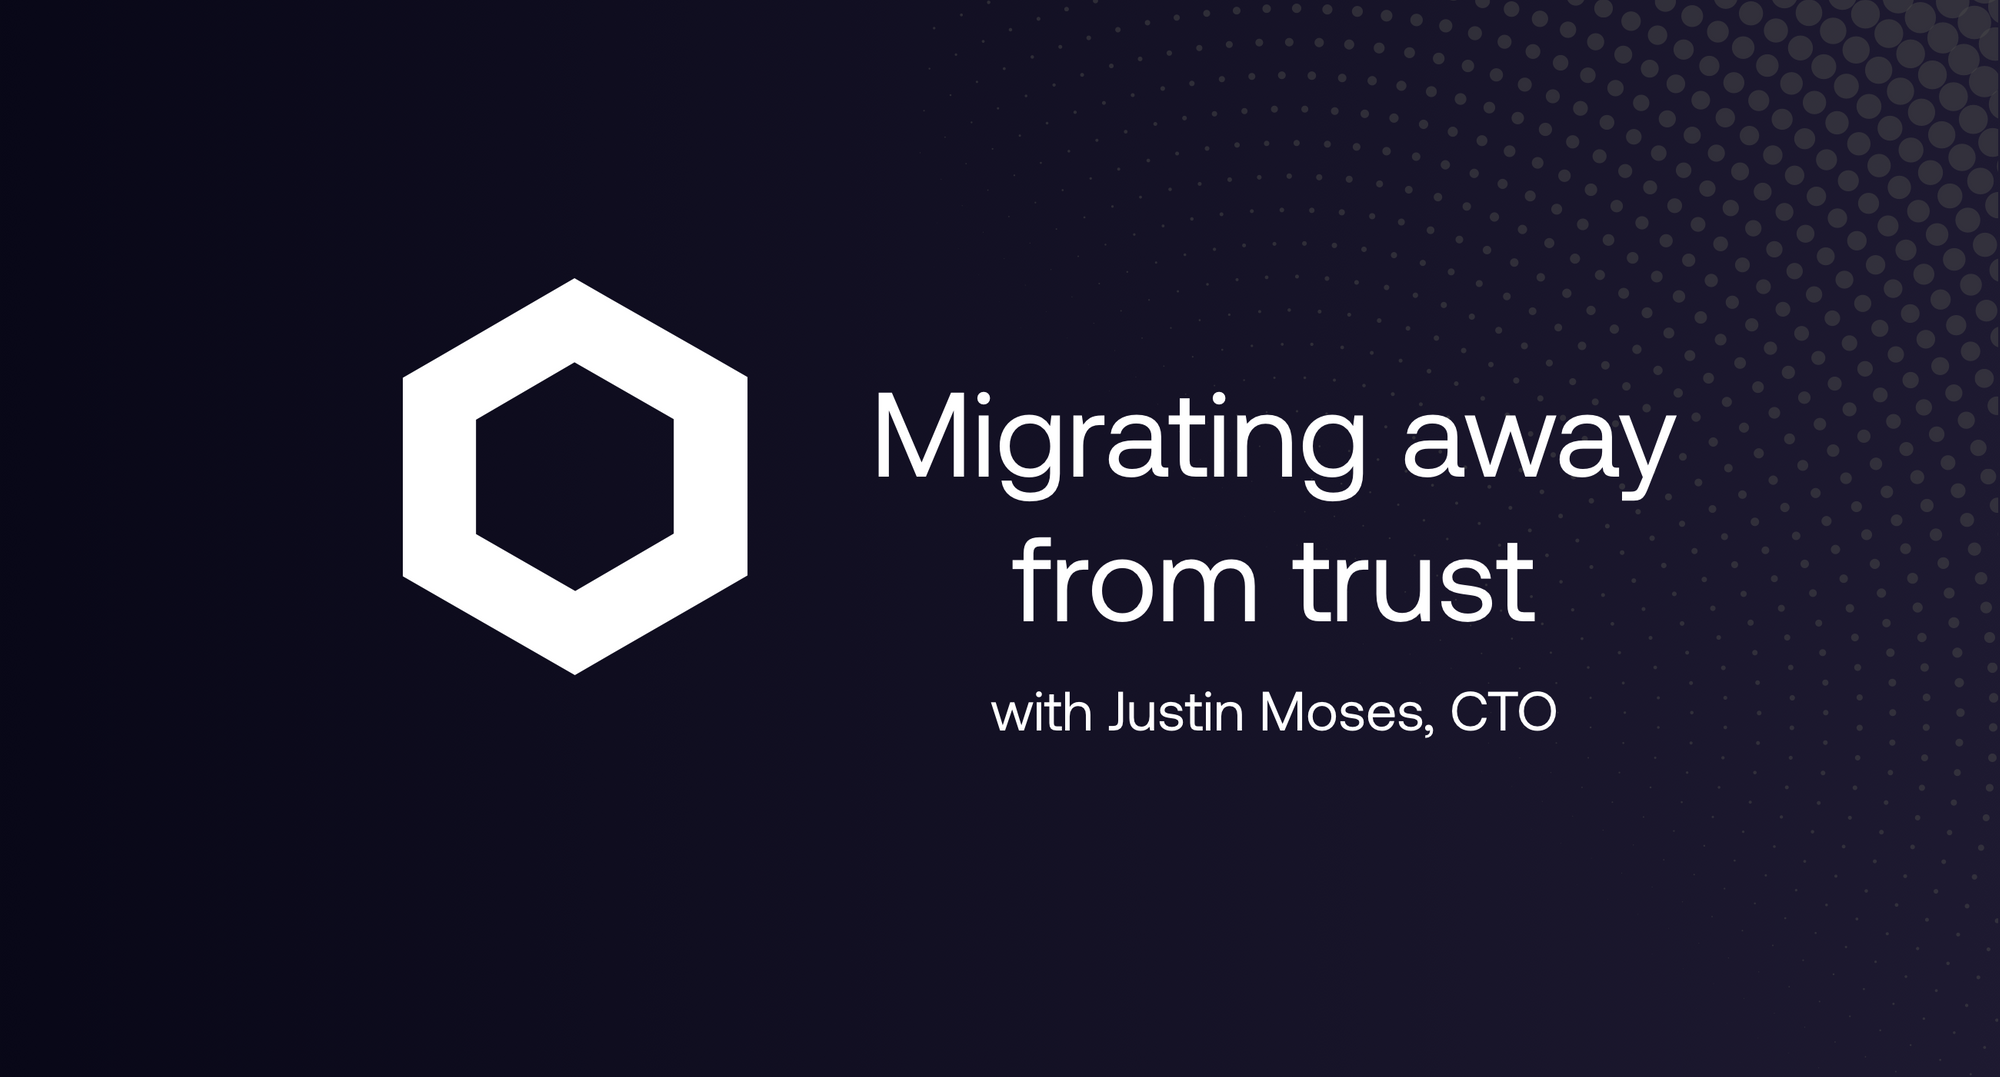 Migrating away from trust